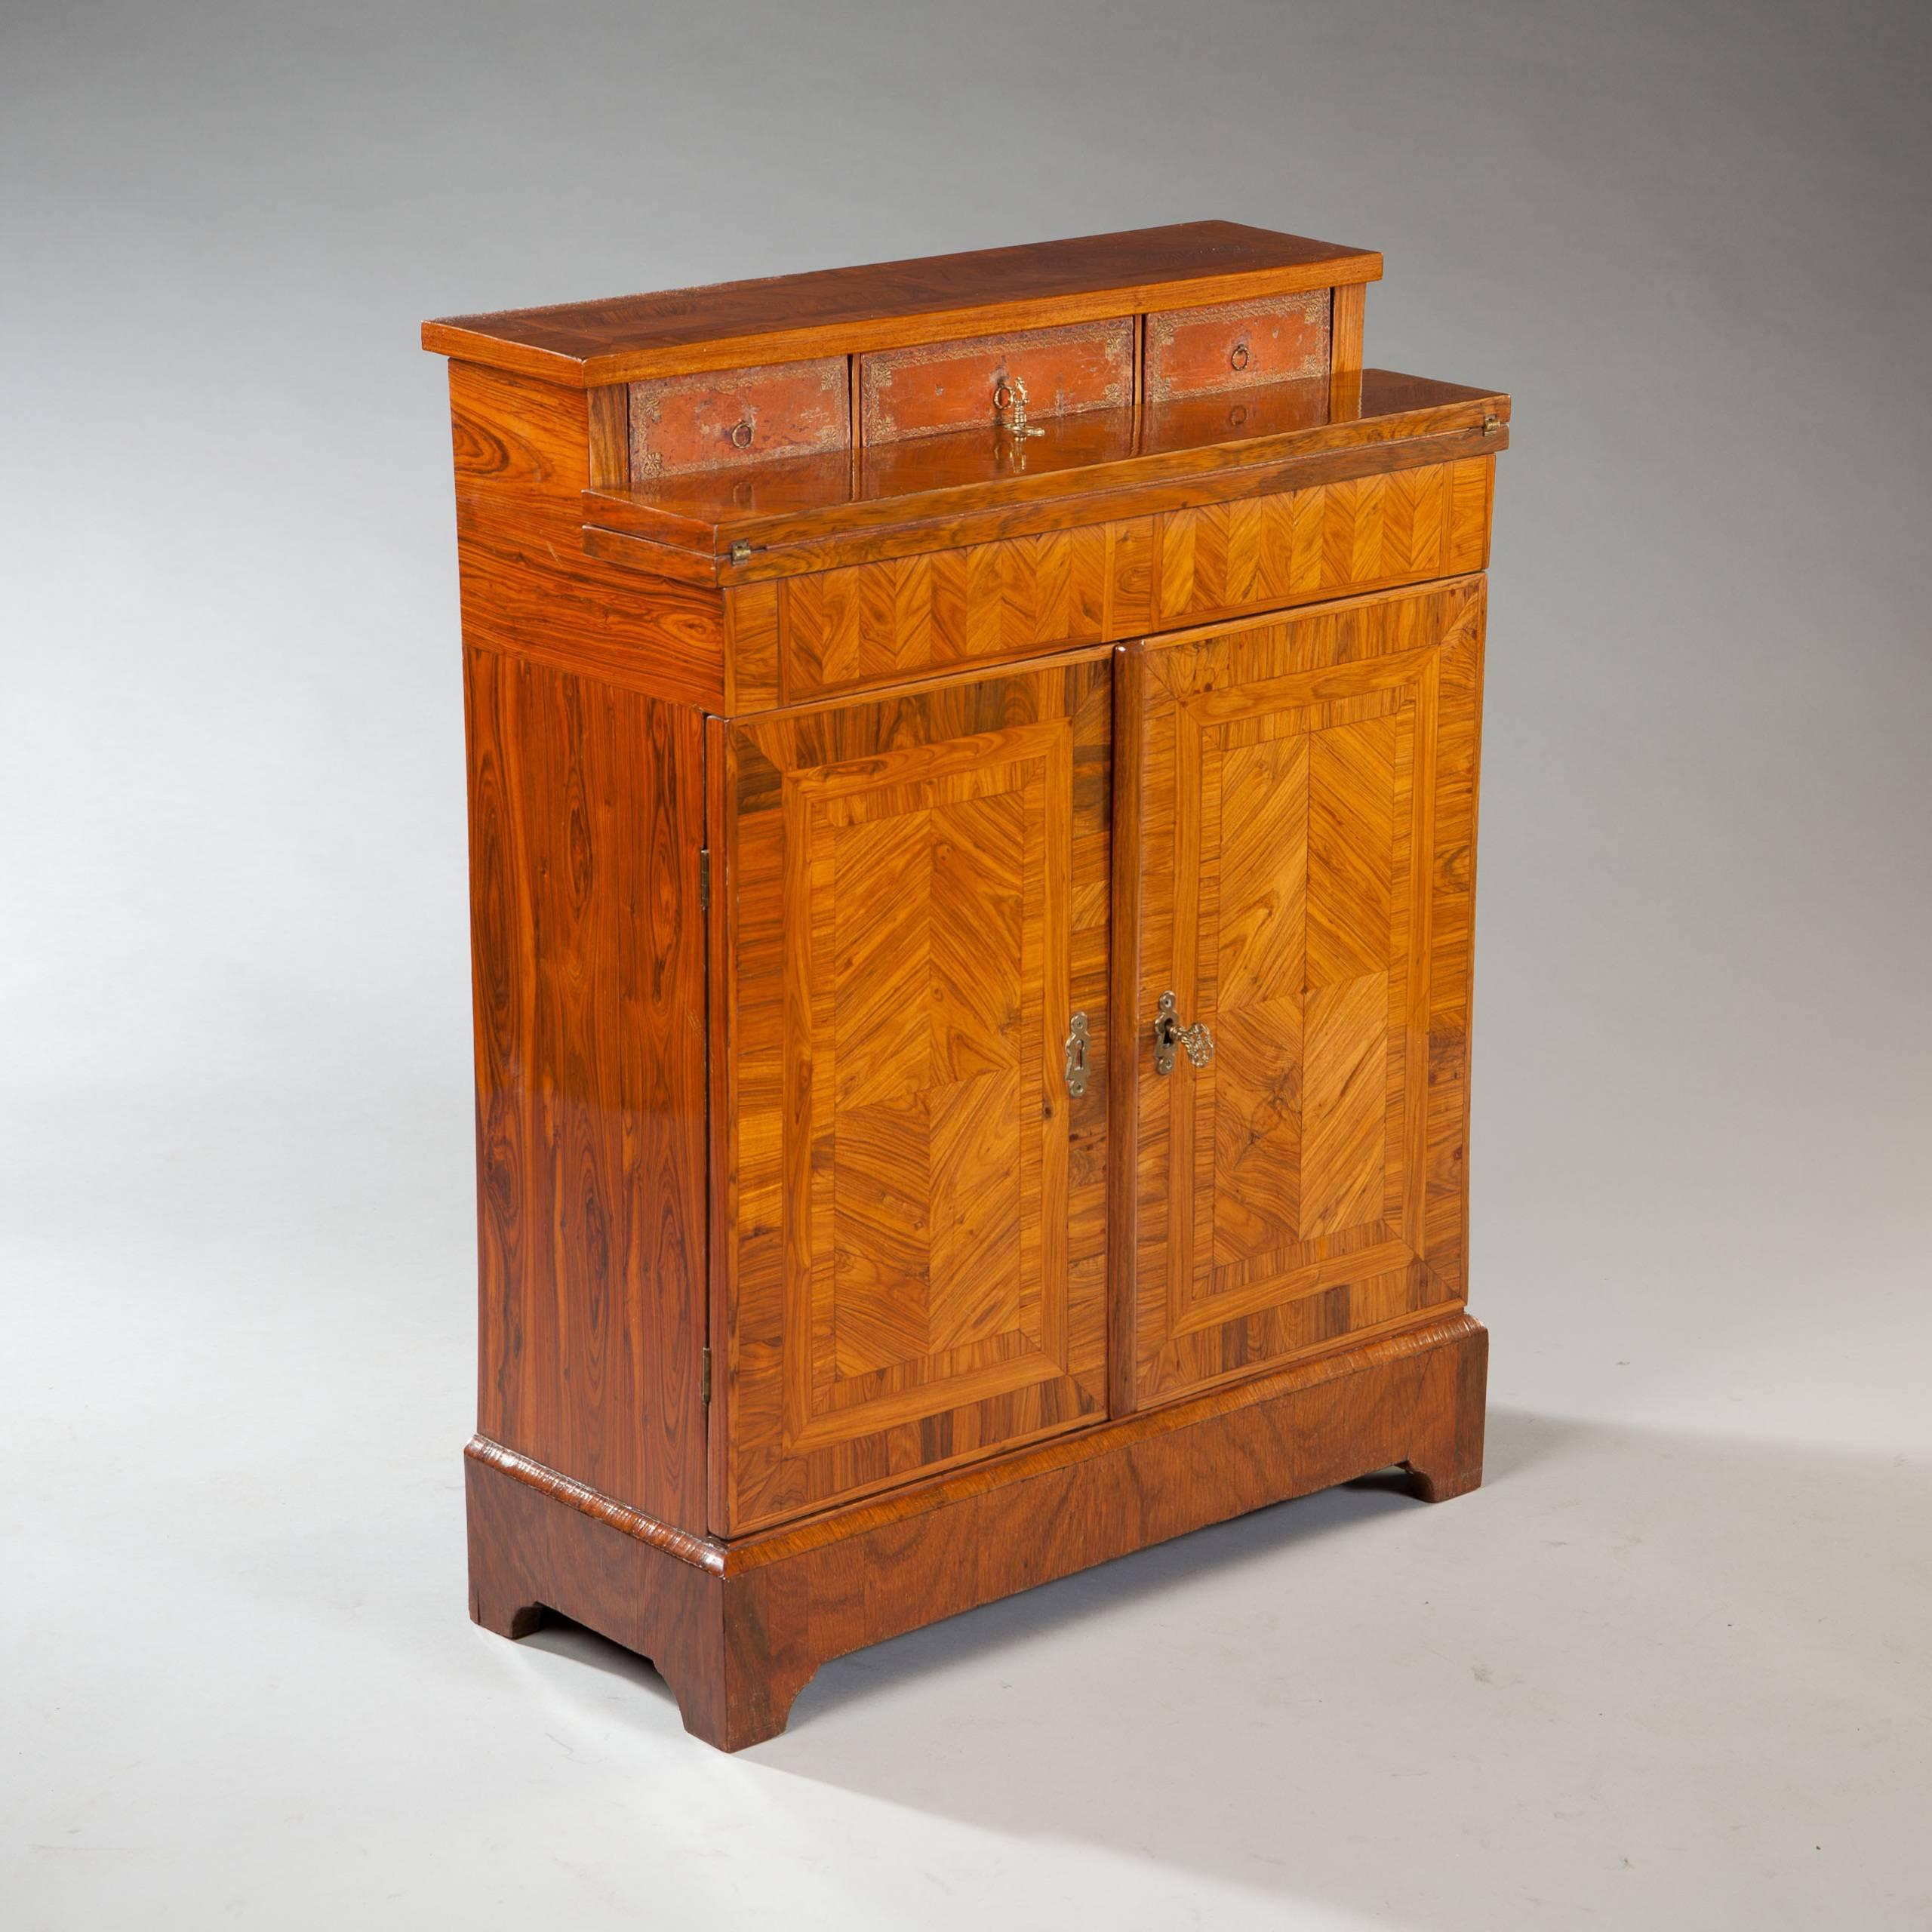 Parquetry Kingwood Secretaire Cabinet Cupboard Shallow Narrow Depth